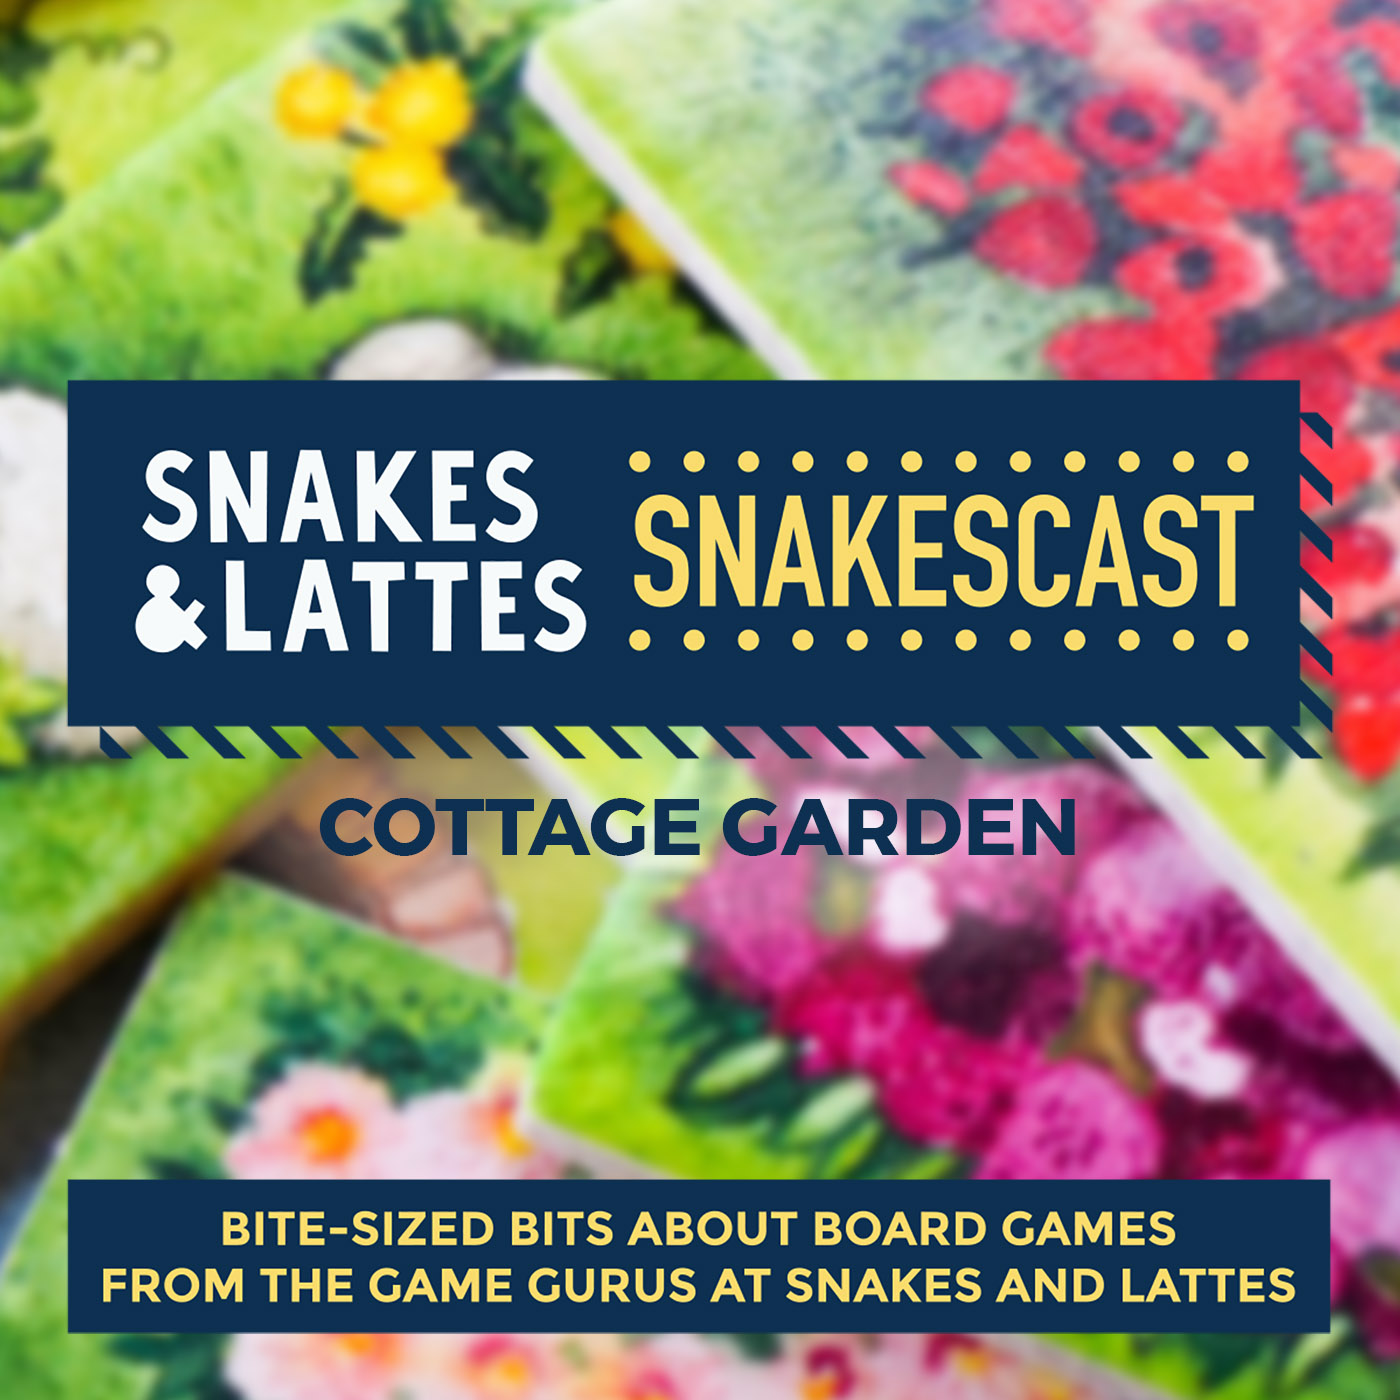 Cottage Garden, Part 2 - Flower Pots, Cloches and More Cats!